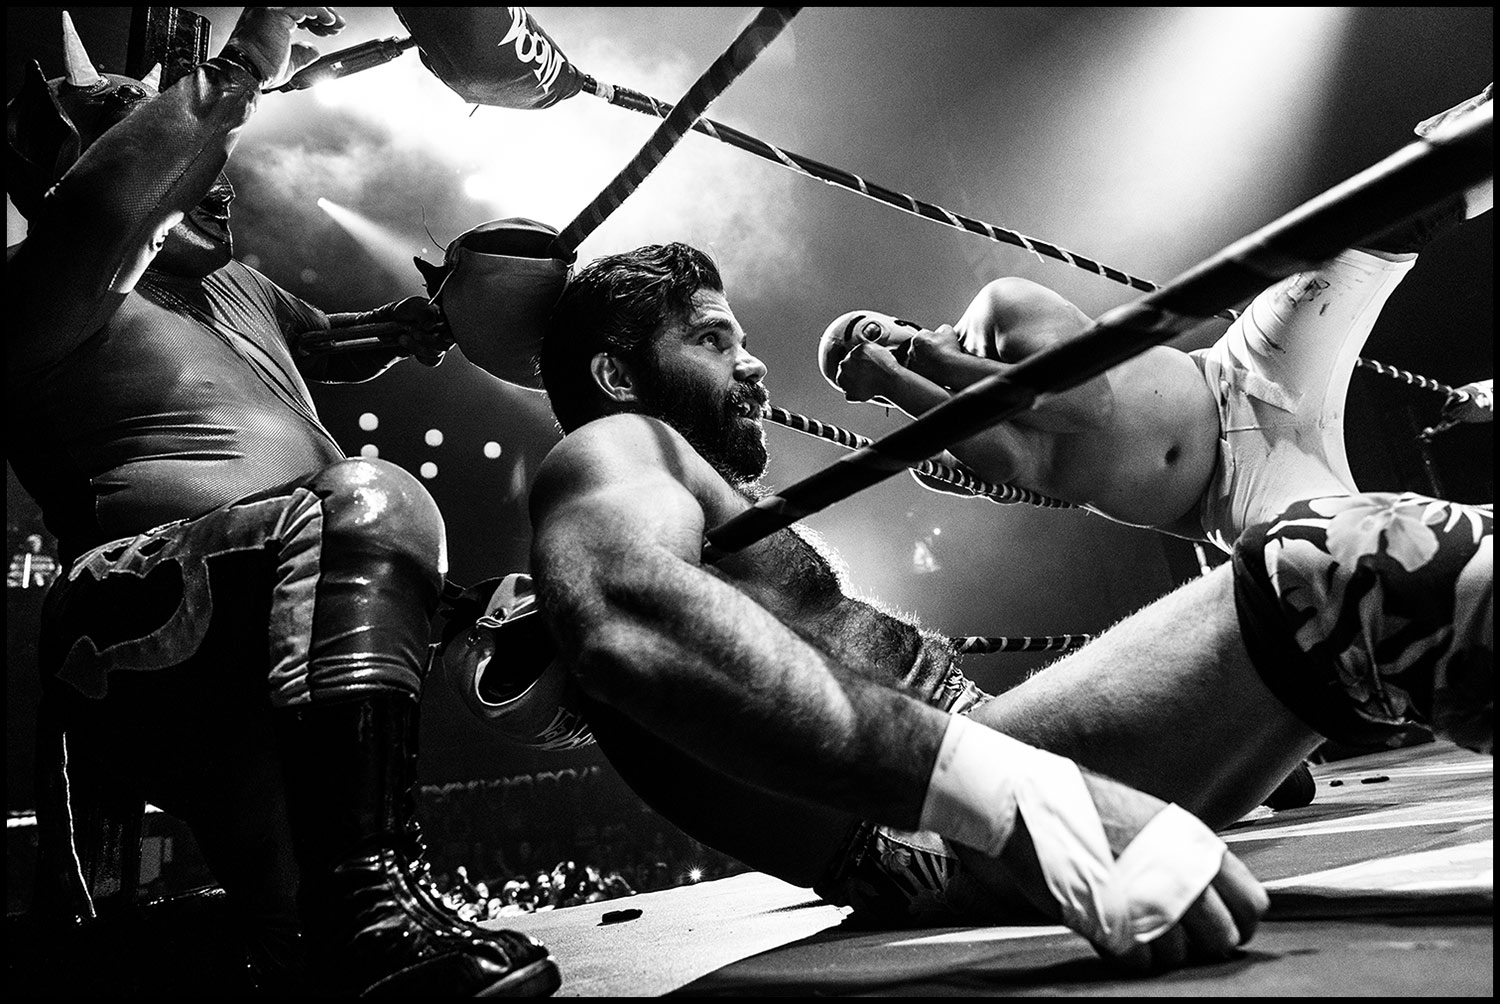 Down and Dirrrty  (Los Angeles, CA) 2018 // Joey Ryan catches his breath moments after an ass-to-face smackdown from none other than Dirty Sanchez, who is seen here falling out of the ring with his dukes up. Lil Devil watches safely from outside the ropes.